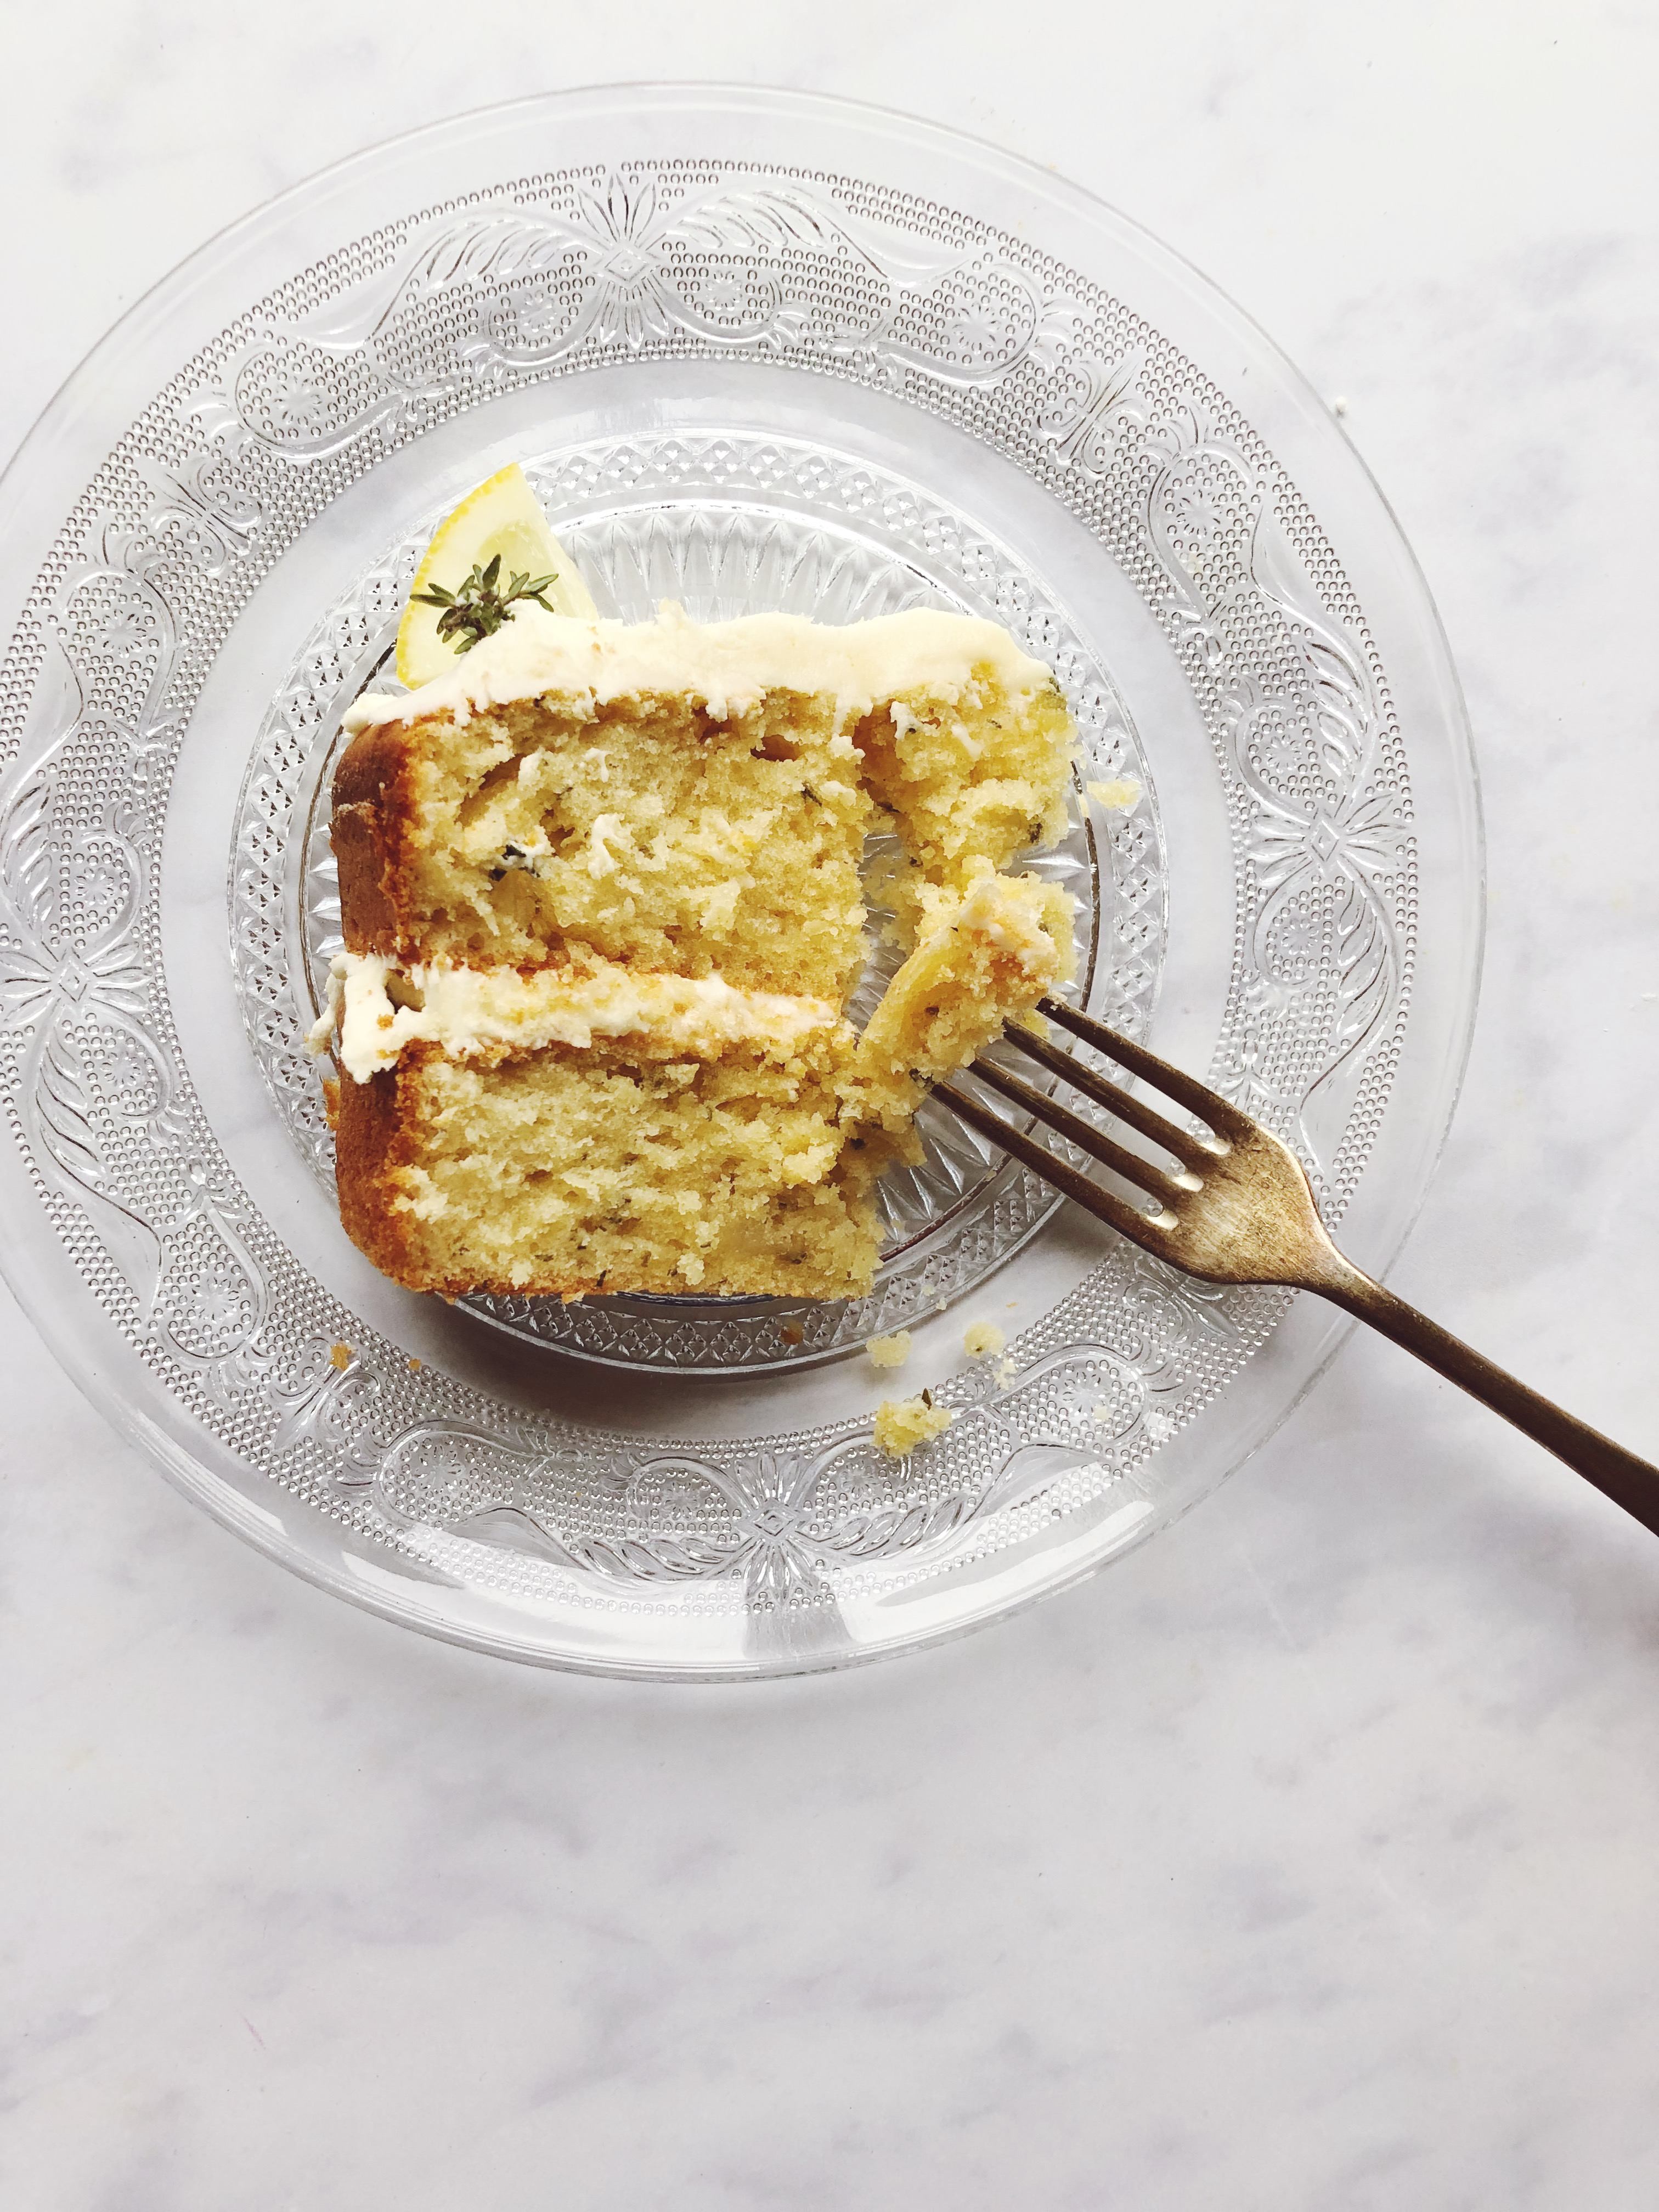 a slice of lemon and thyme sponge cake